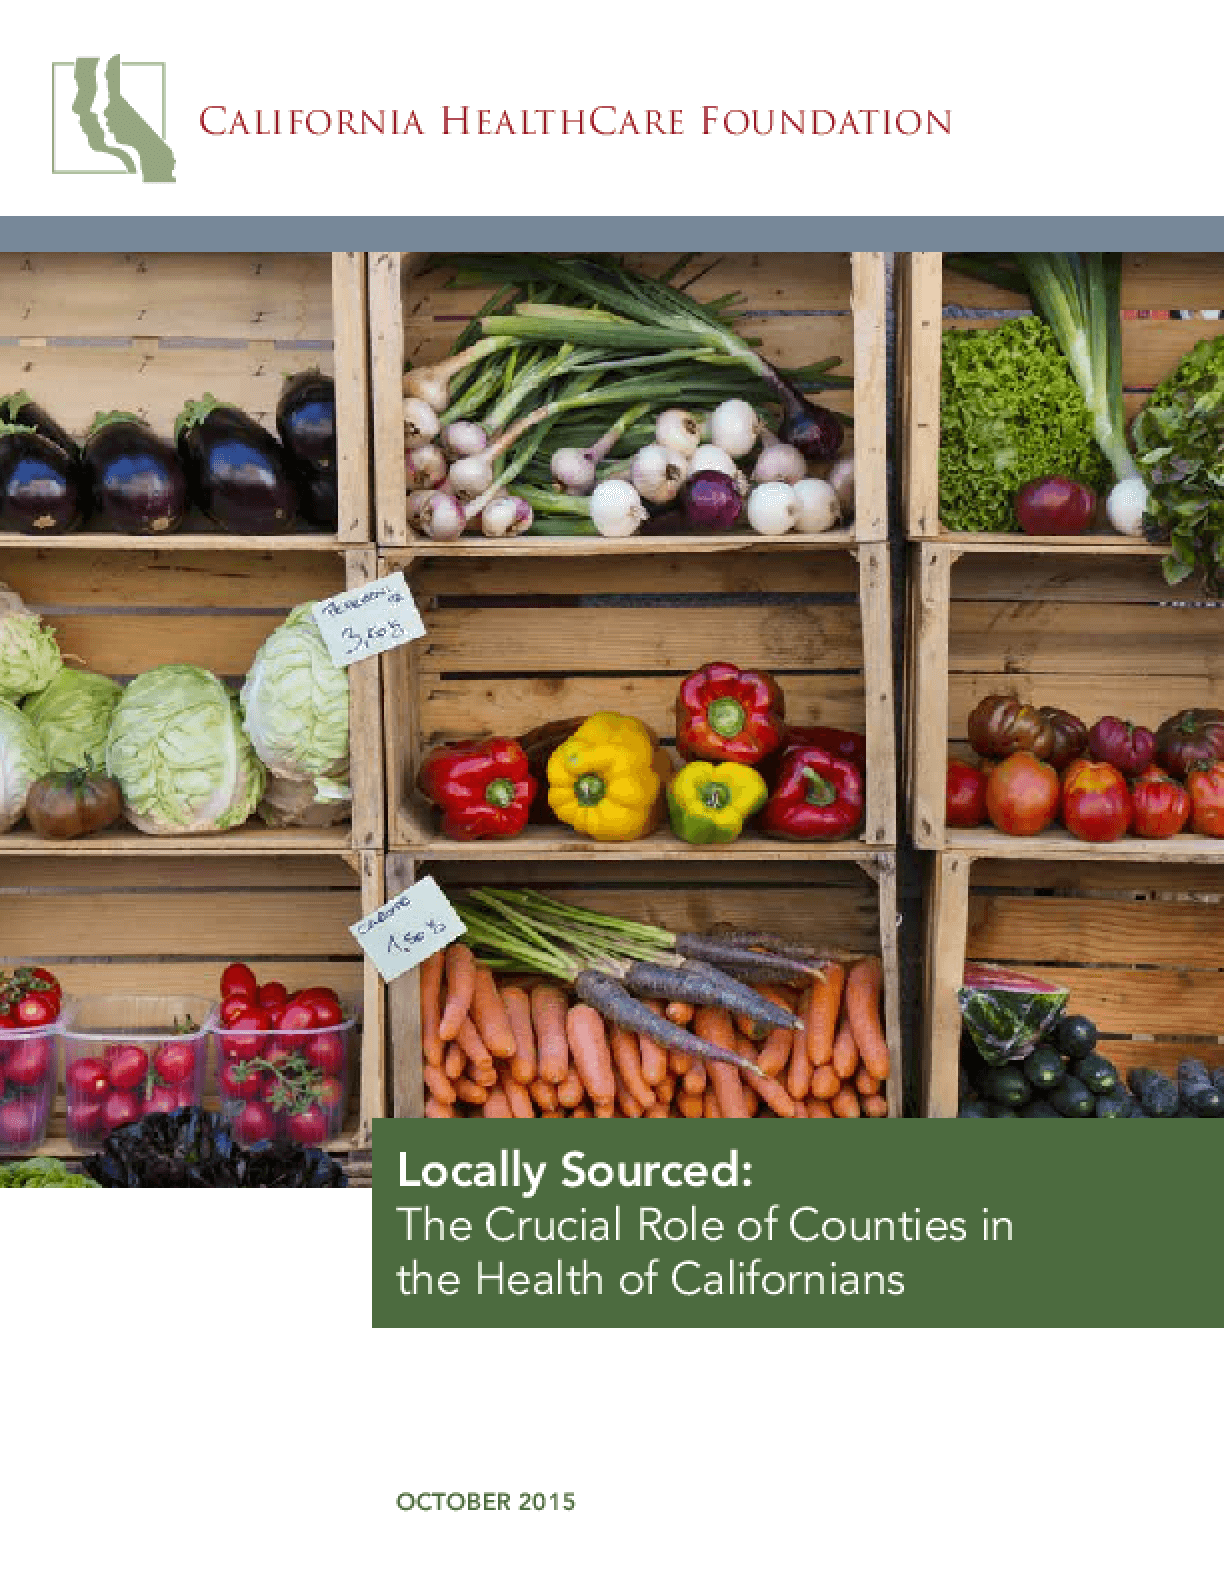 Locally Sourced: The Crucial Role of Counties in the Health of Californians